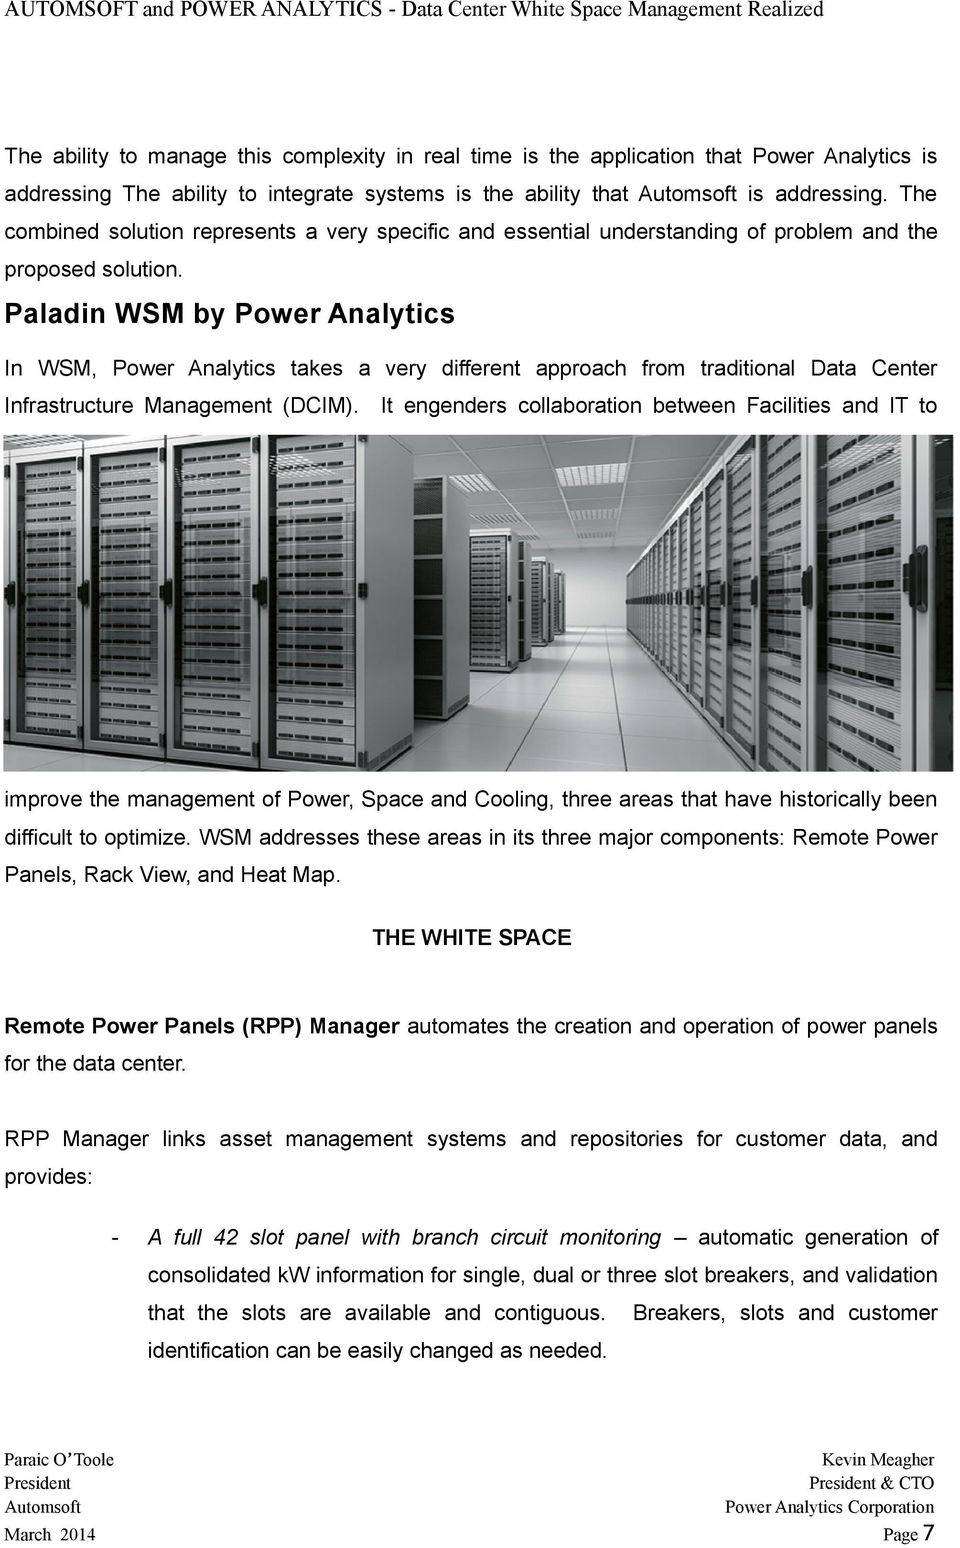 Paladin WSM by Power Analytics In WSM, Power Analytics takes a very different approach from traditional Data Center Infrastructure Management (DCIM).